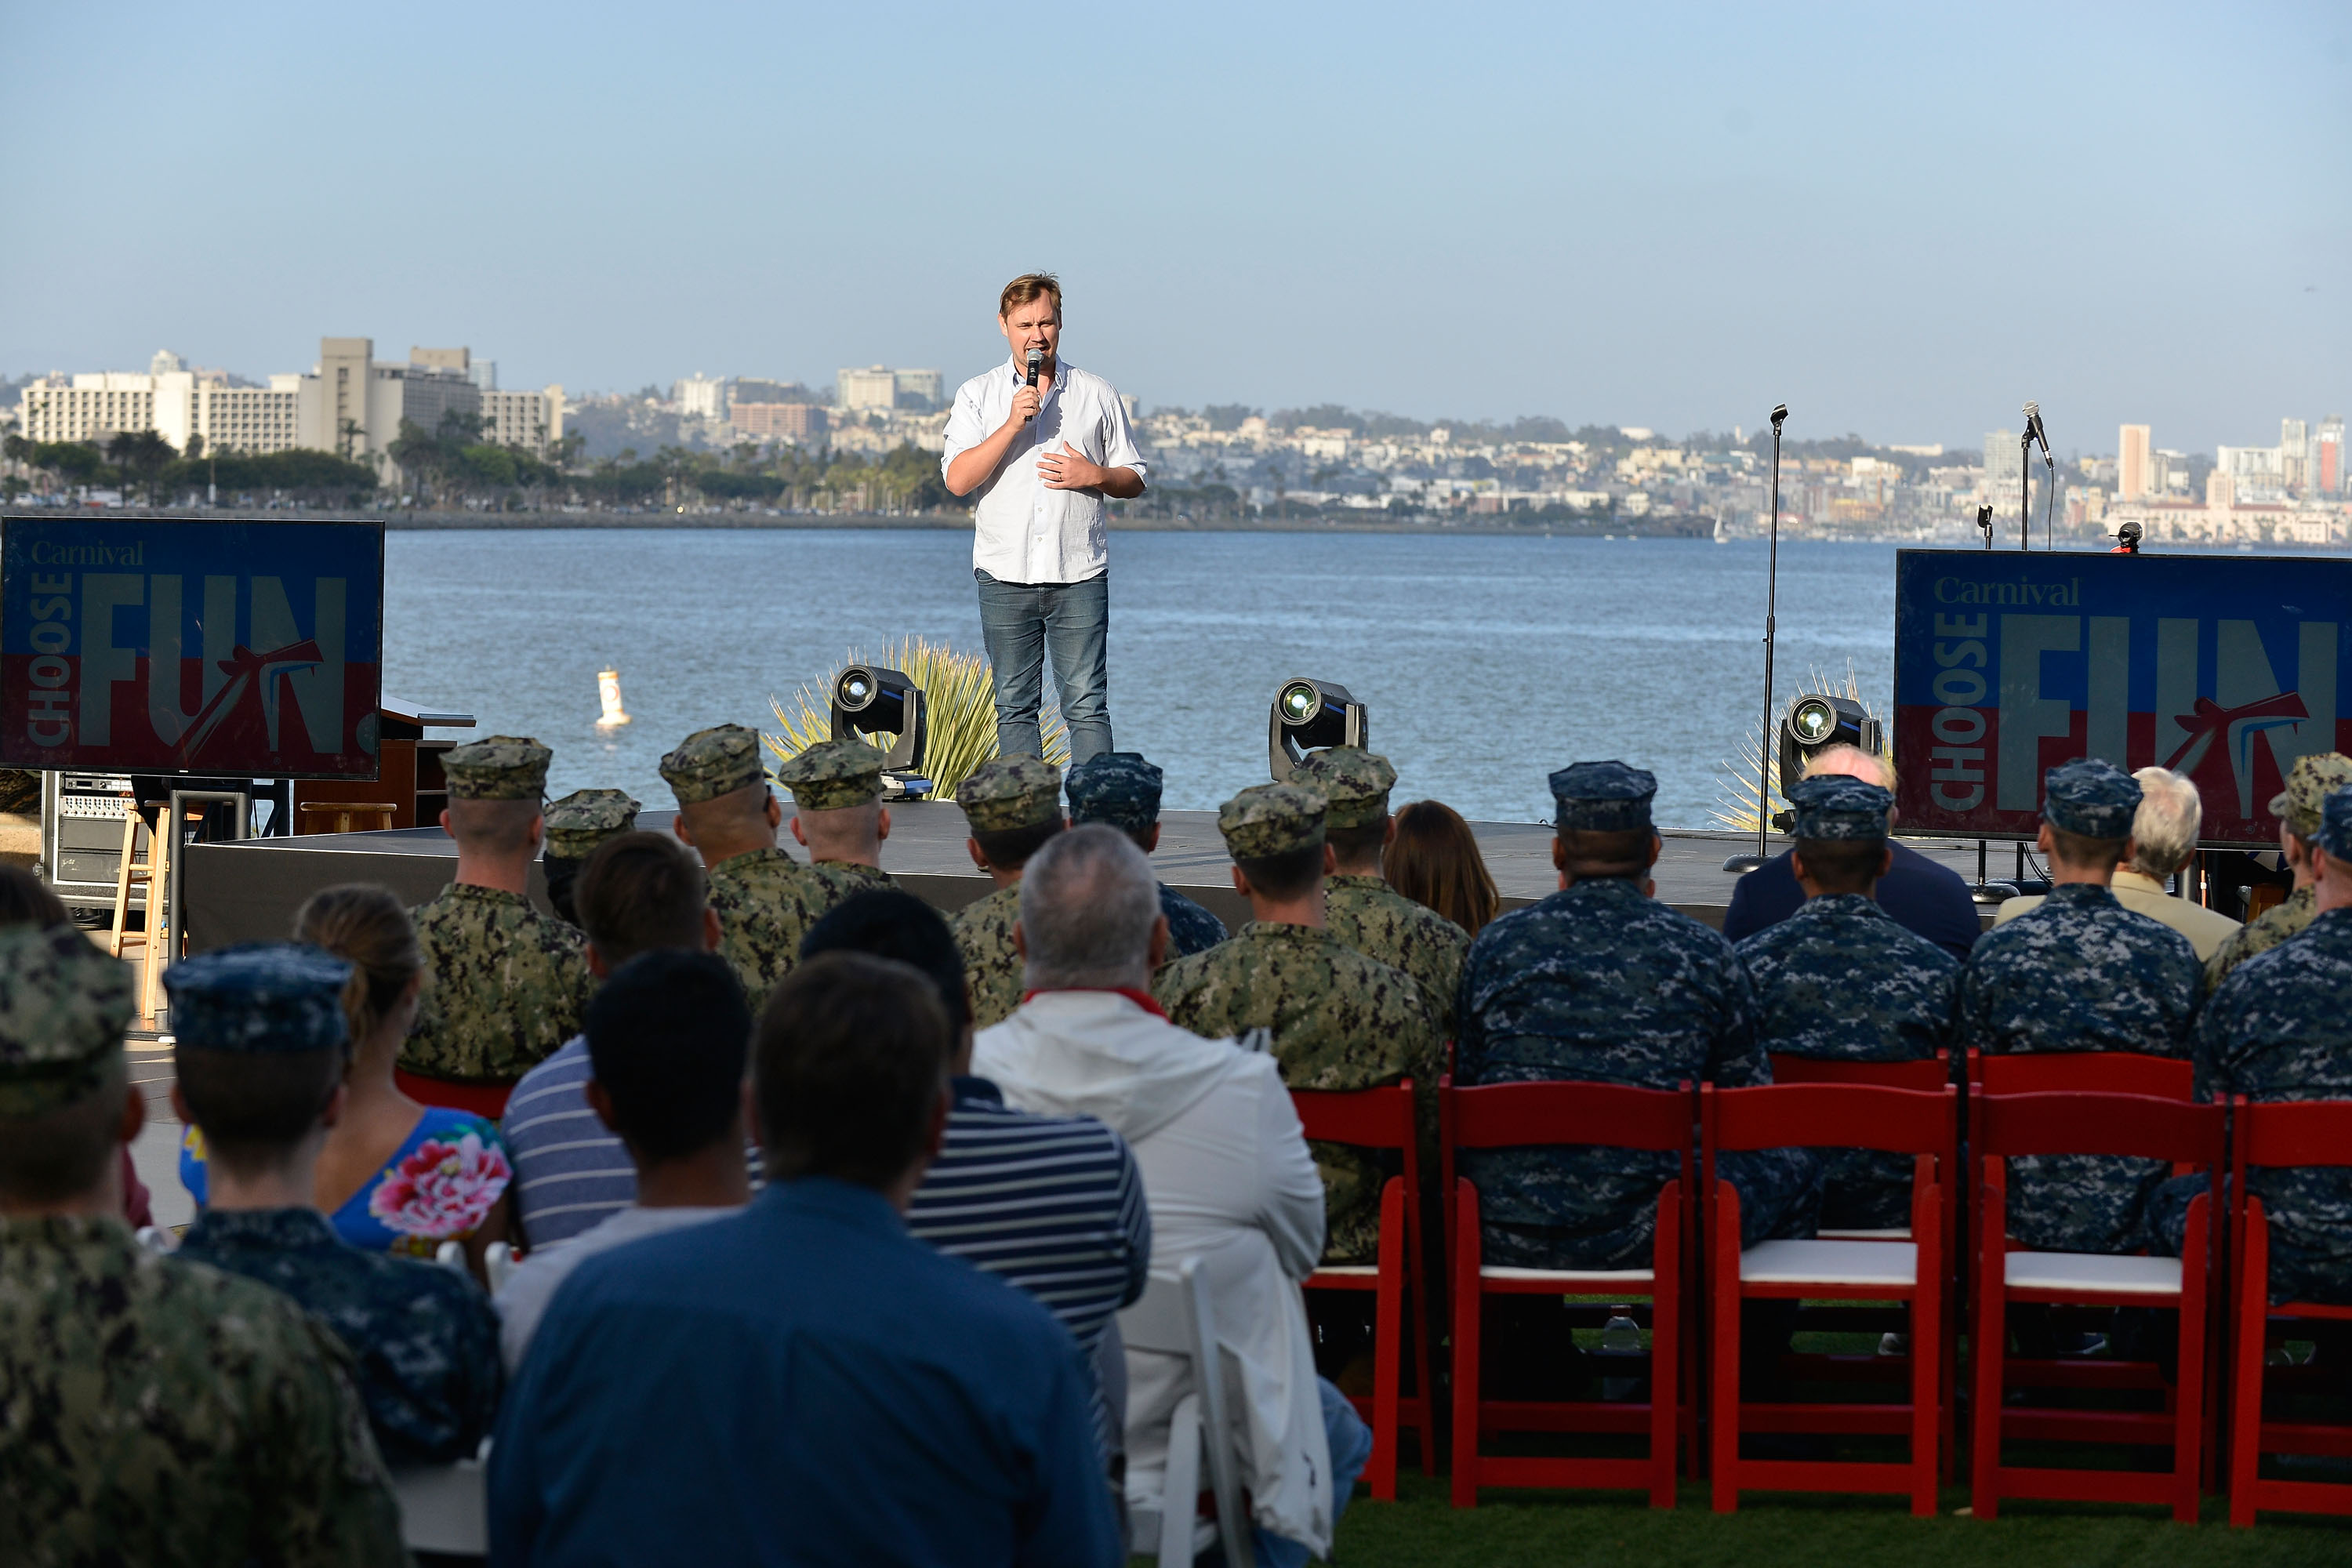 Carnival Cruise Line Hosts 'Humor for Heroes' Event at Naval Base Point Loma In San Diego Featuring Special Comedy Performance for 500 Military Personnel